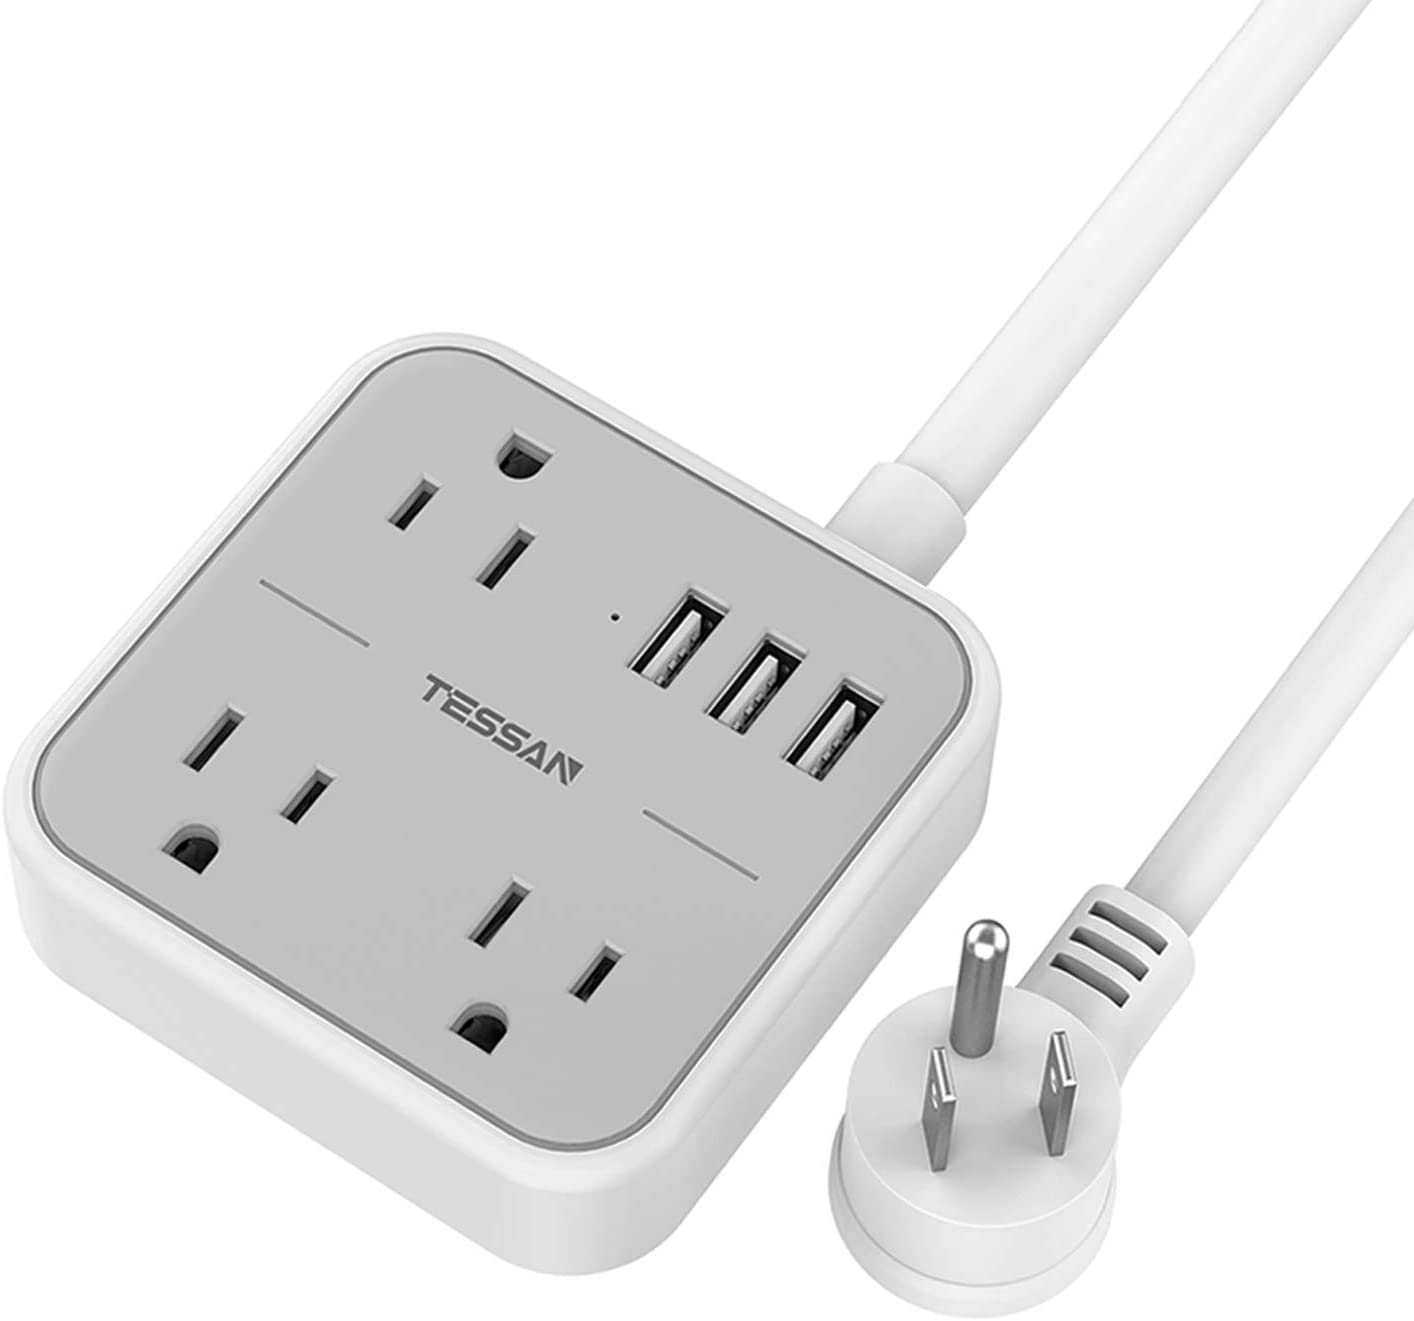 Power Strip with USB, TESSAN Flat Plug Extension Cord with 3 USB Ports, Mini Travel Power Strip with 3 Widely Spaced Outlets, 5 Feet Cord, Compact for Dorm Essentials, Cruise Ship, Hotel, Home, Gray